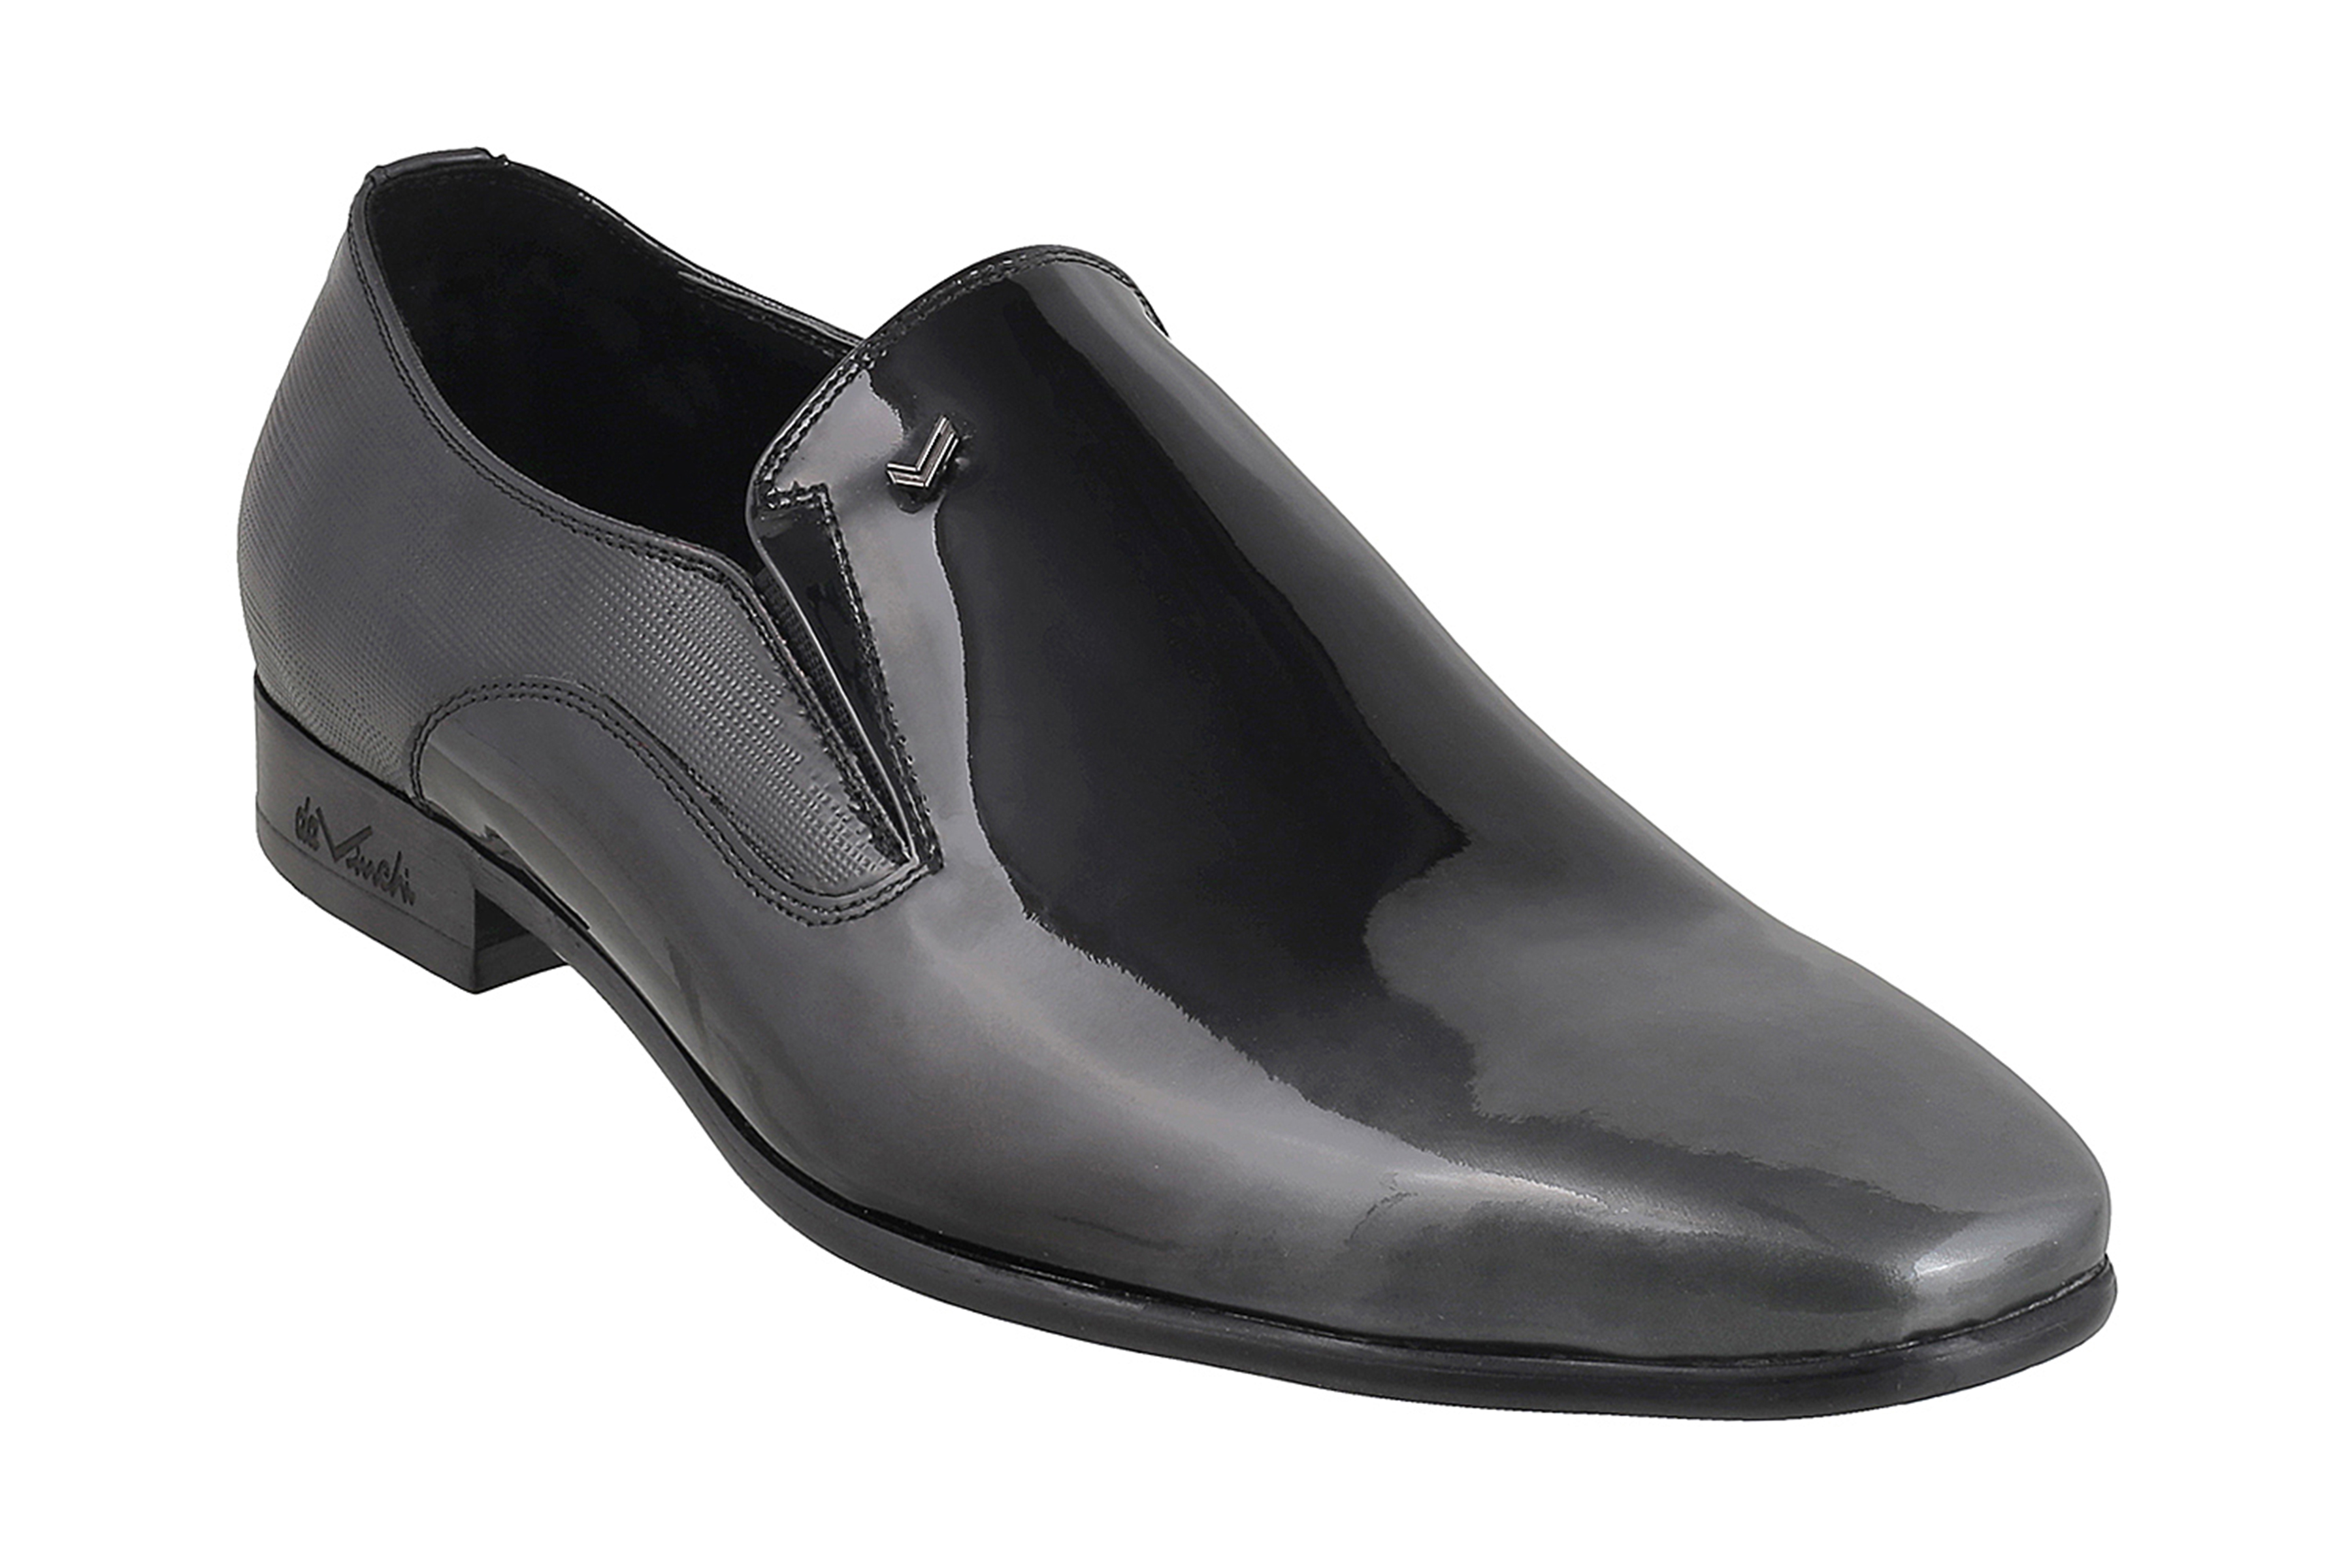 Metro_DaVinchi_INR 9990_Patent leather shoes (1)